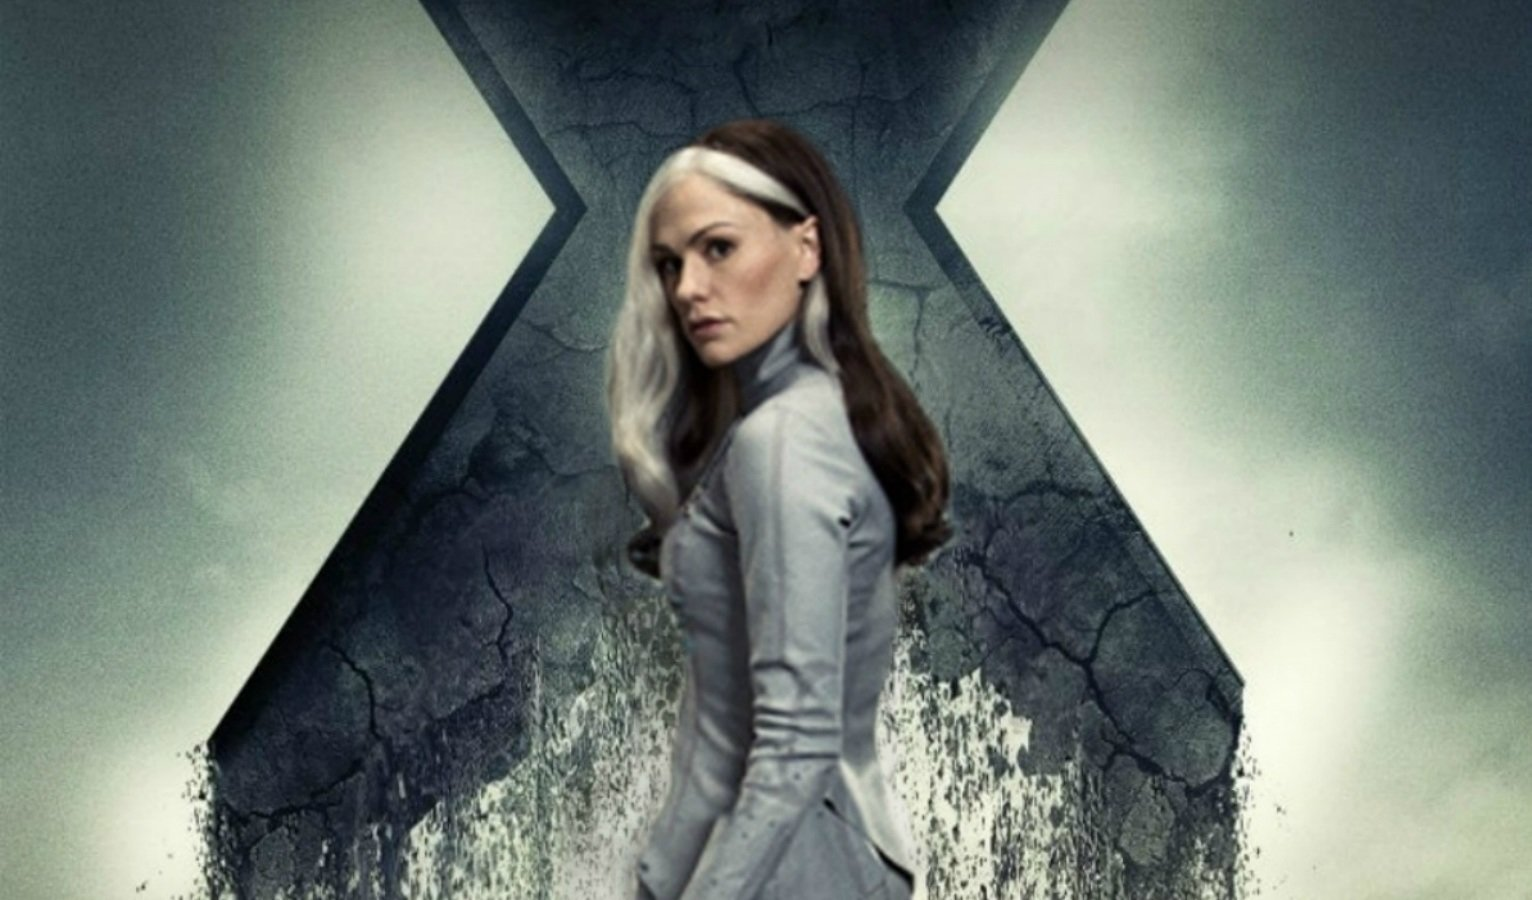 X men rogue hintie pornos image